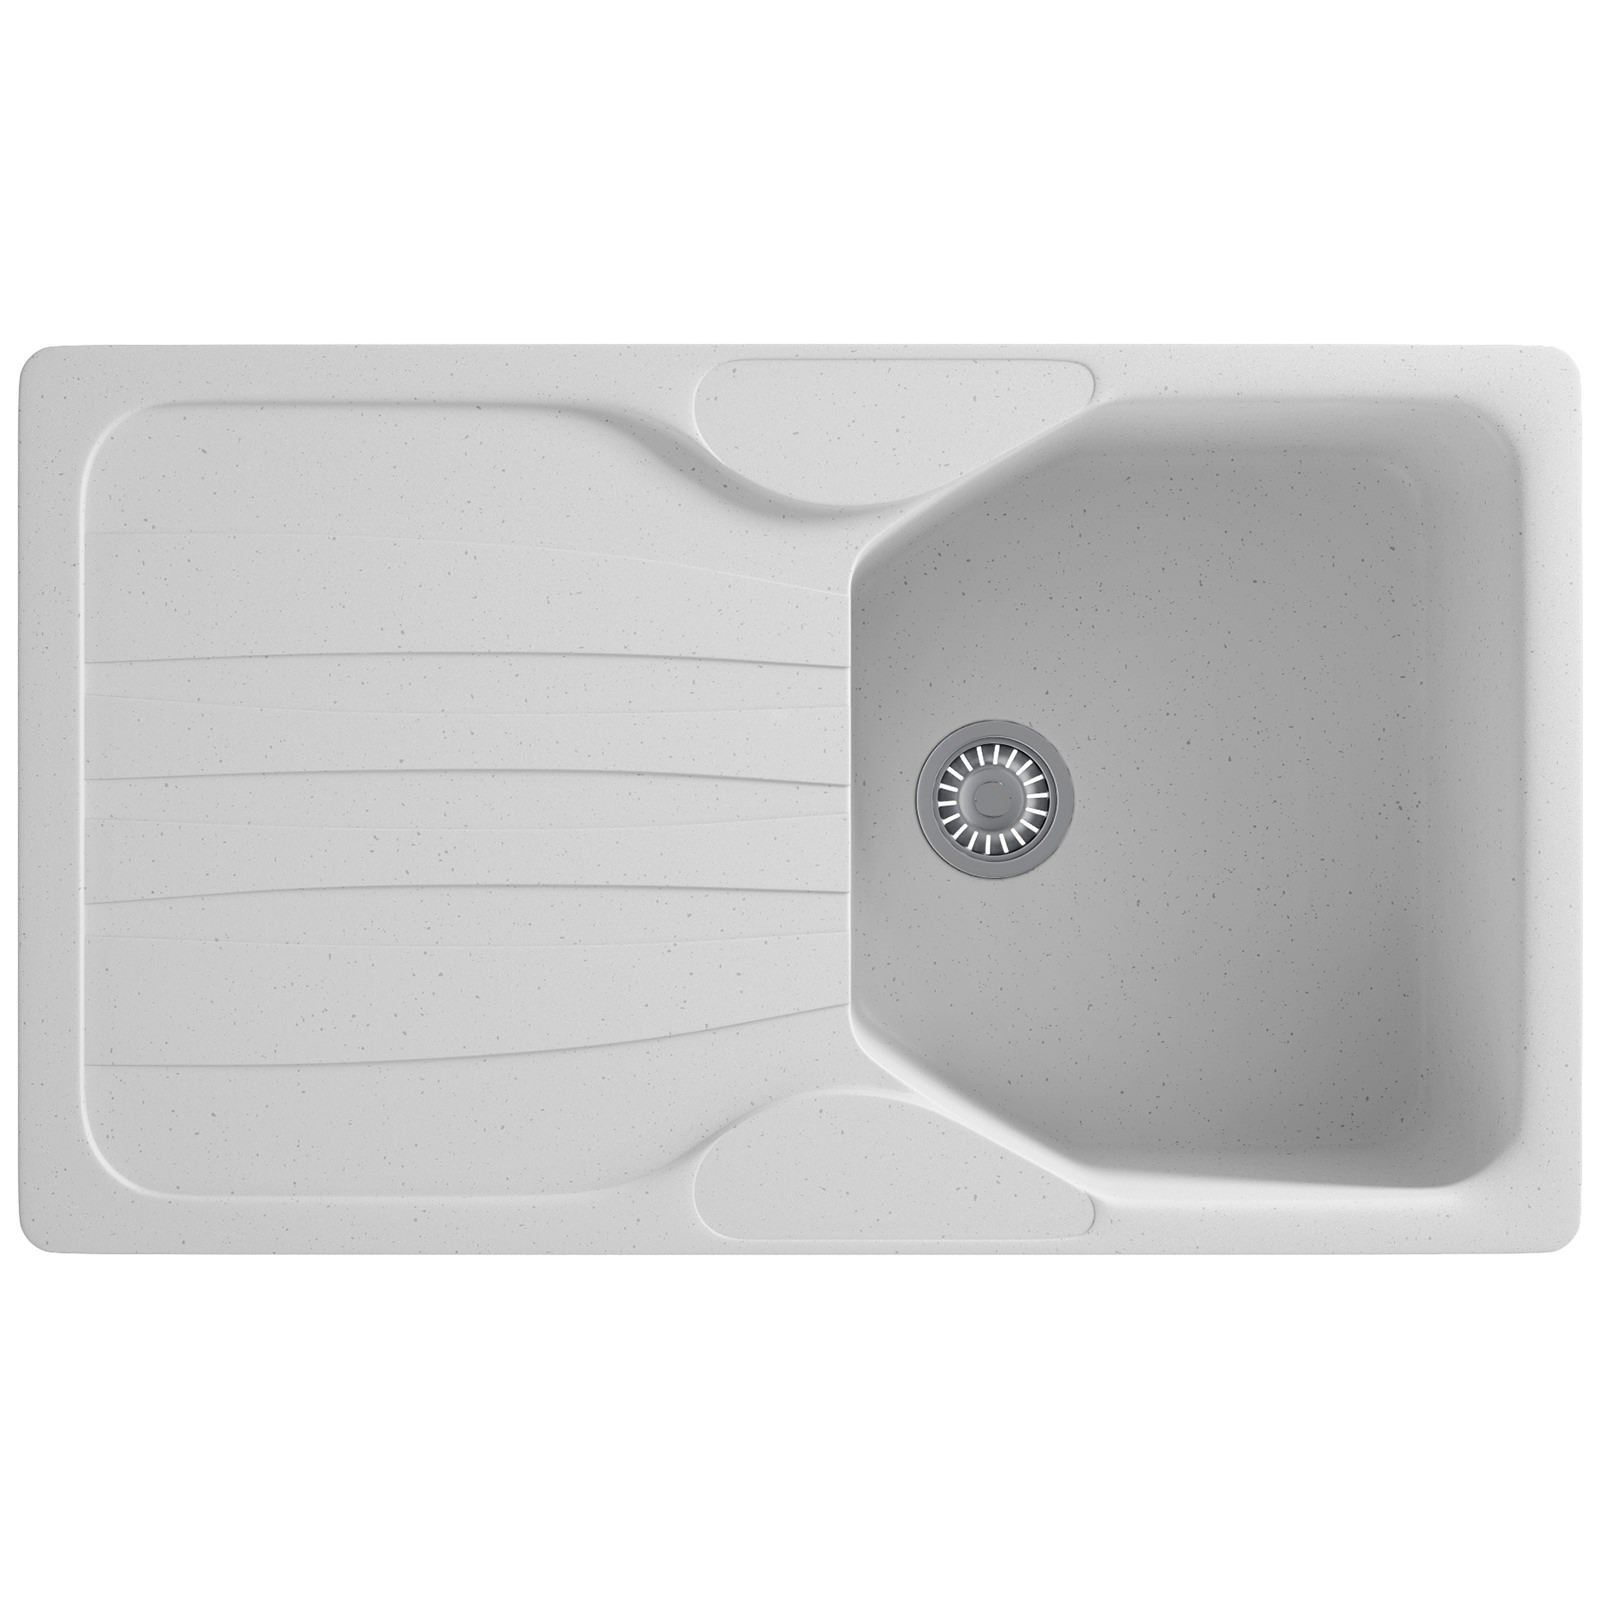 Franke Calypso Sink : Franke Calypso COG 611 Fragranite Polar White 1.0 Bowl Inset Sink ...